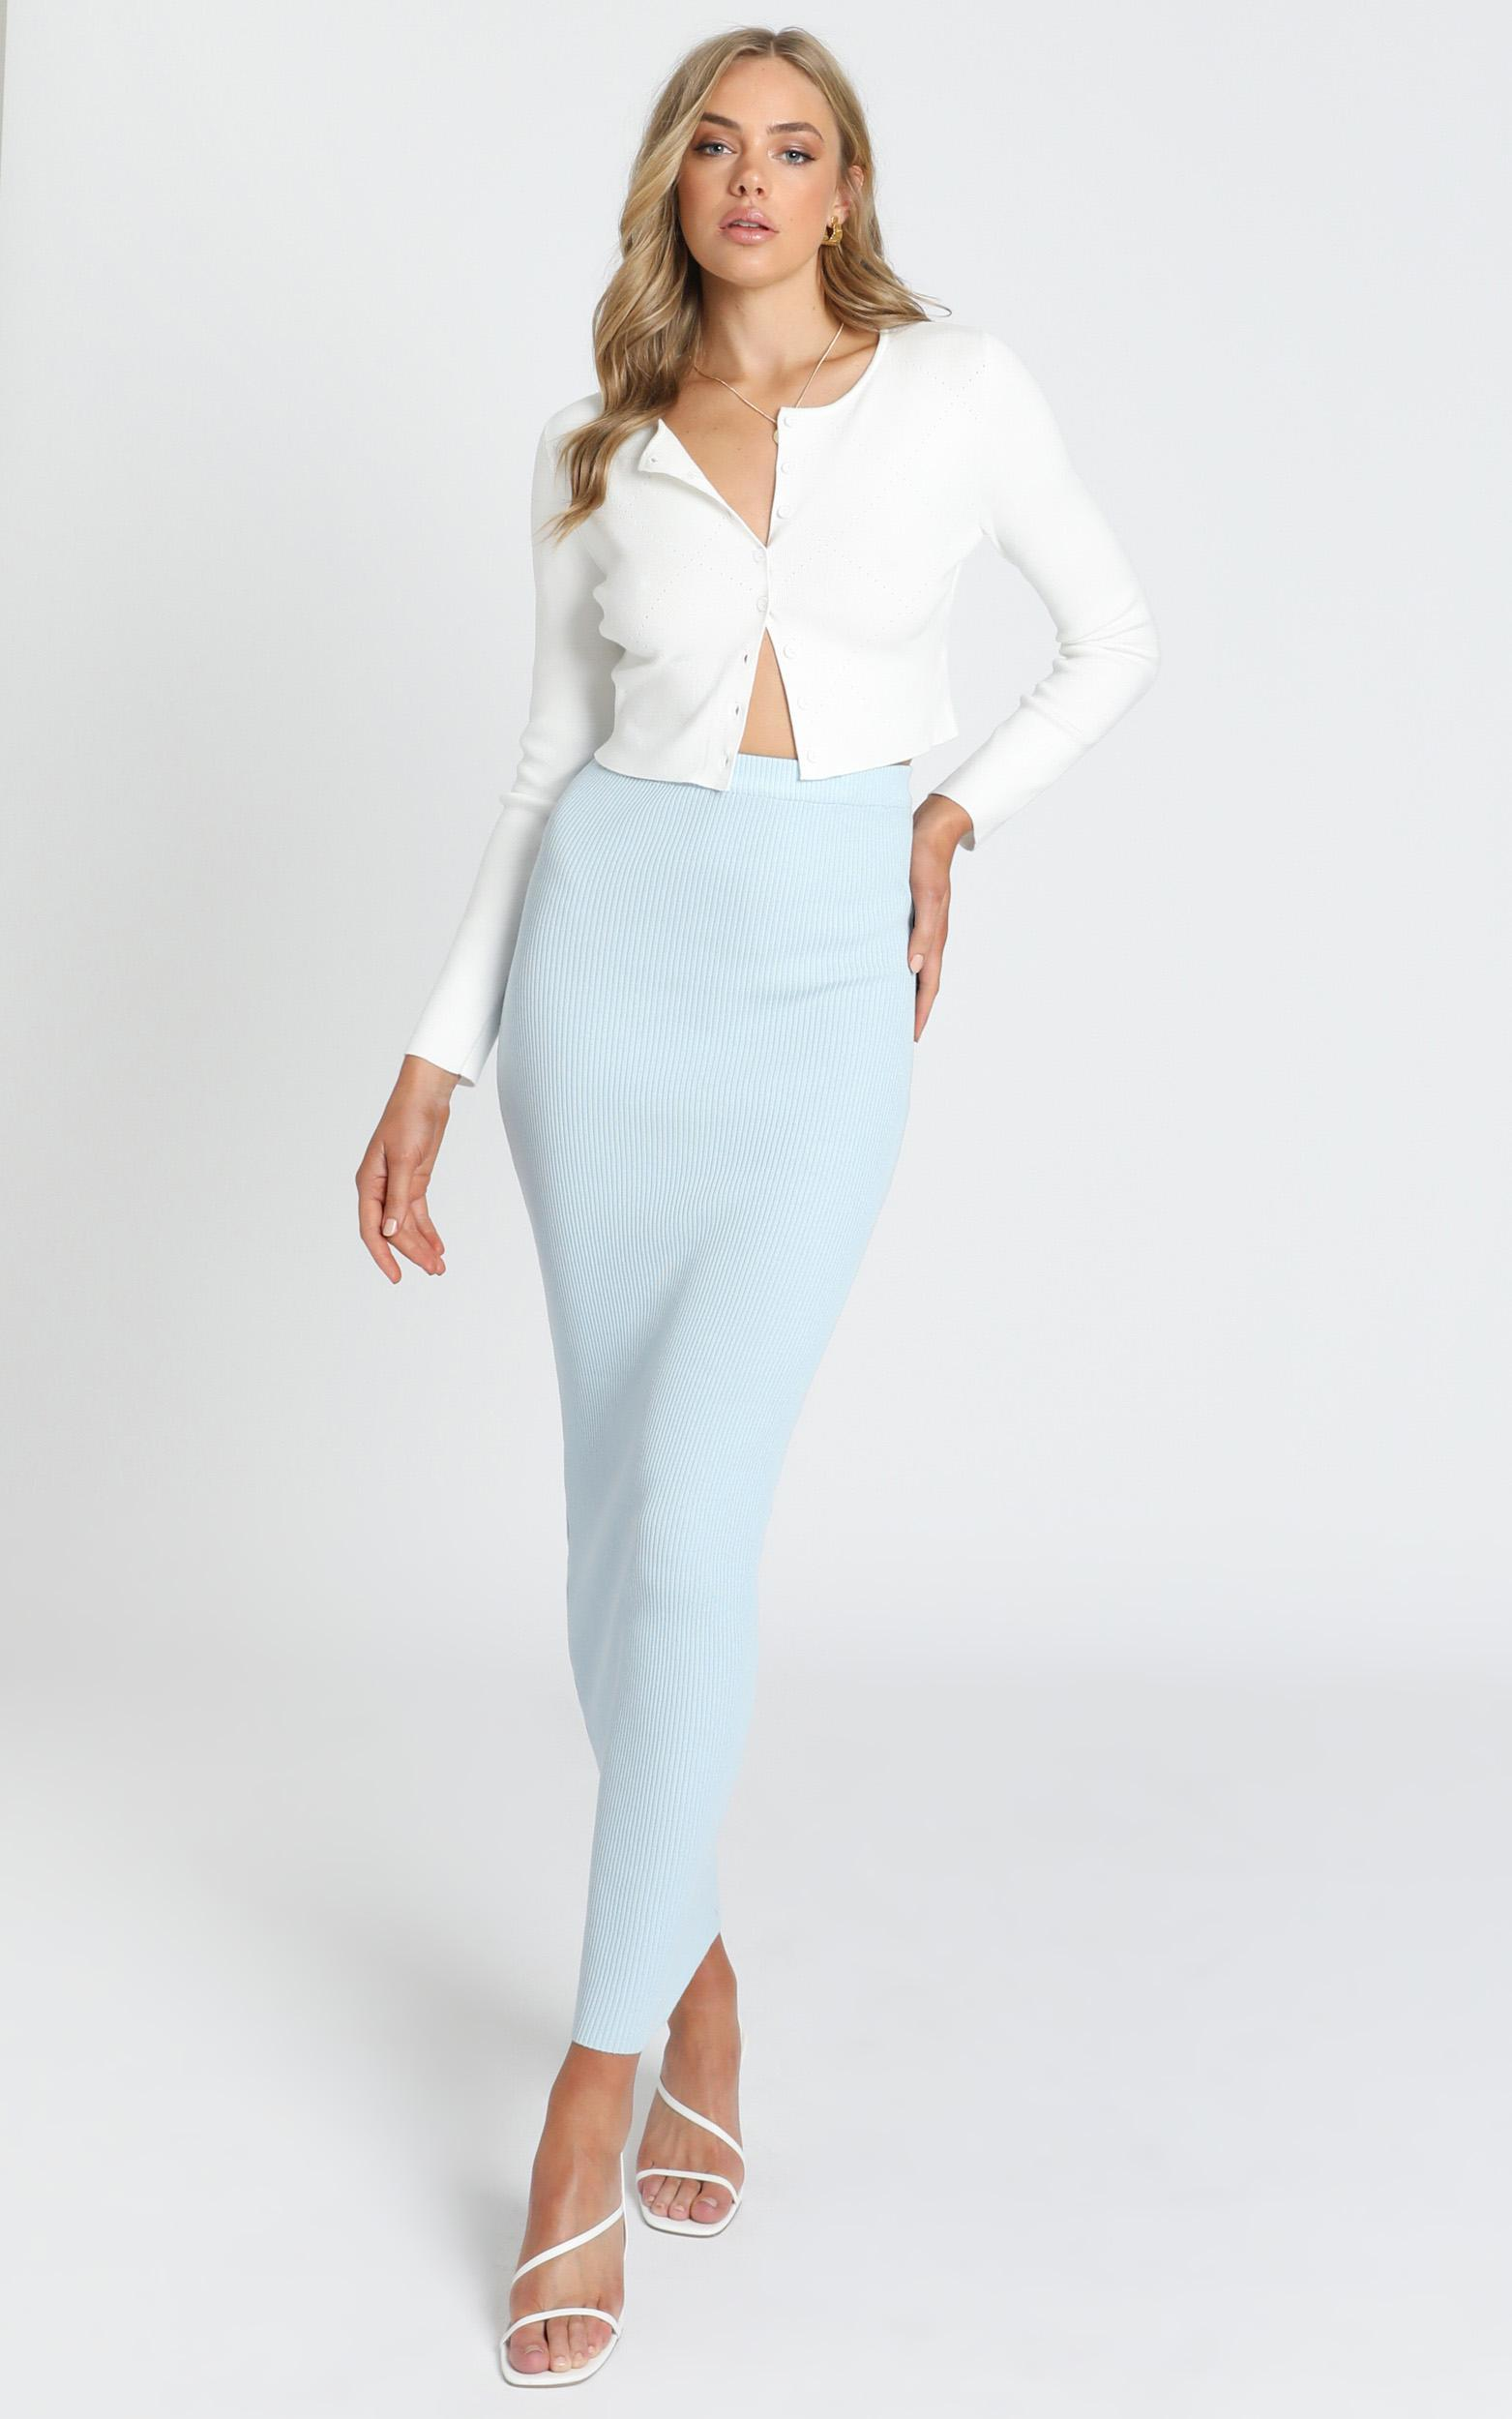 Jessie Knit Skirt in Blue - 8 (S), Blue, hi-res image number null